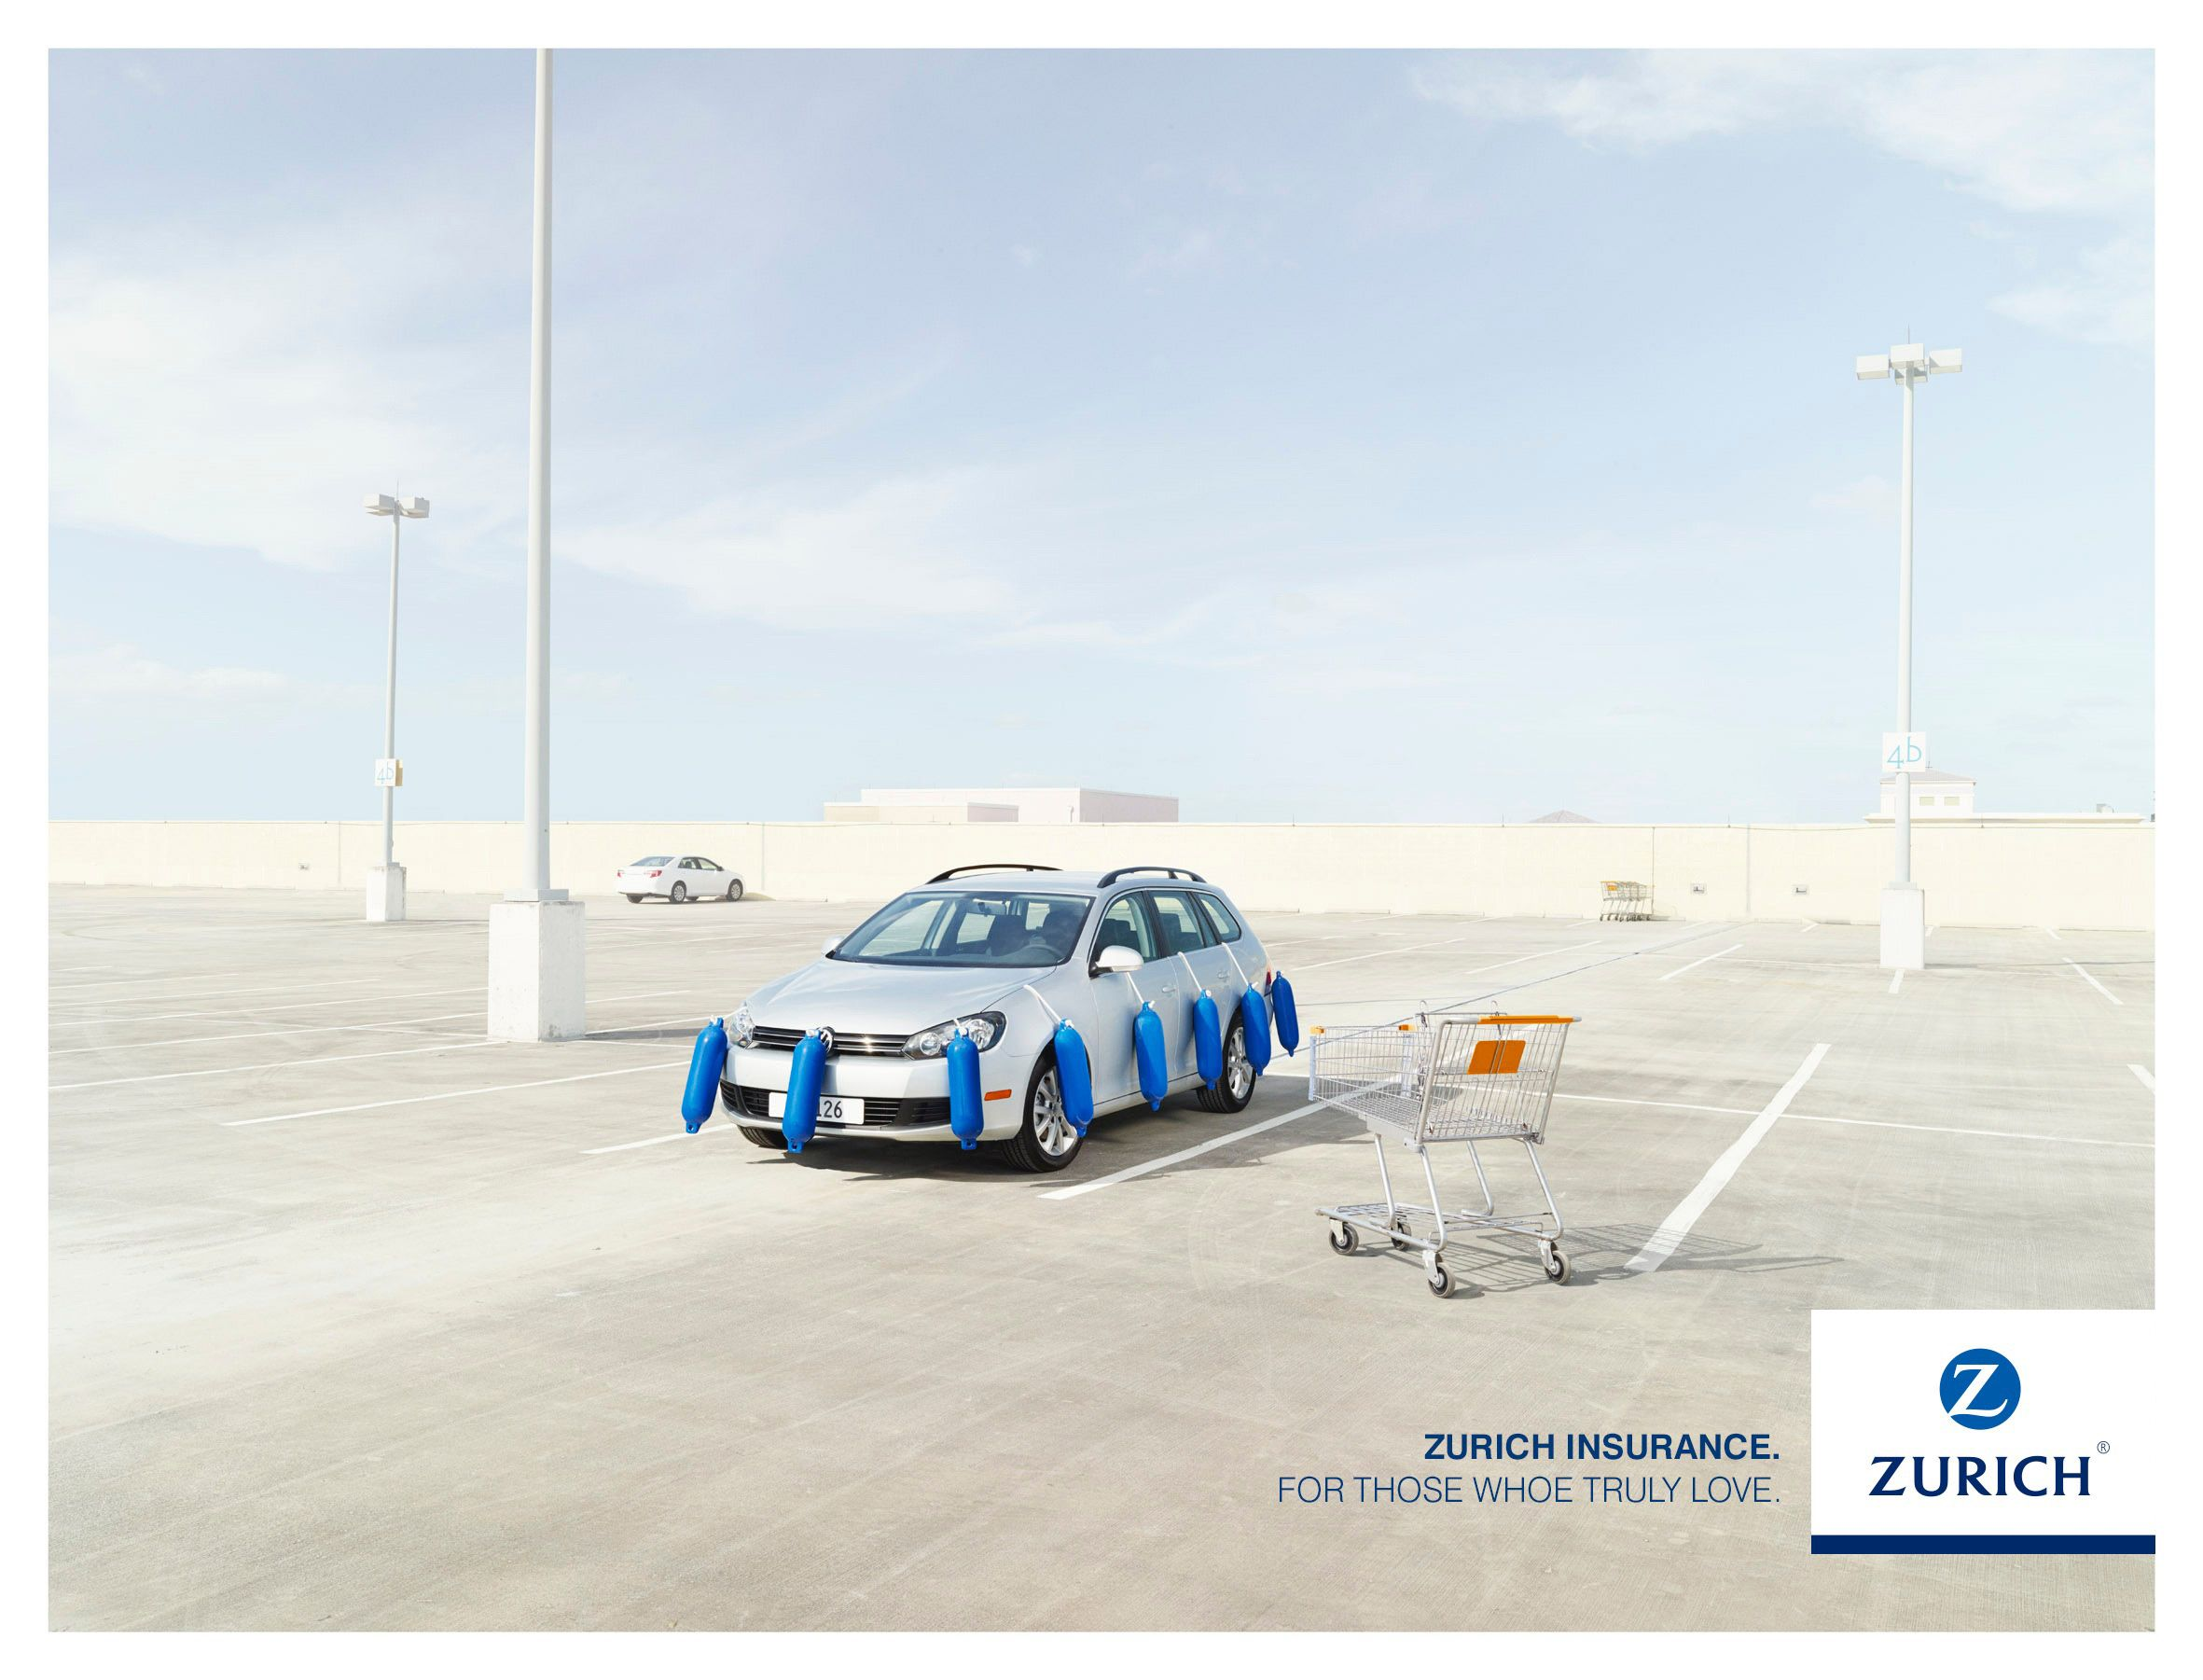 Adeevee Zurich Insurance Trolley Zurich Car Protection Ad